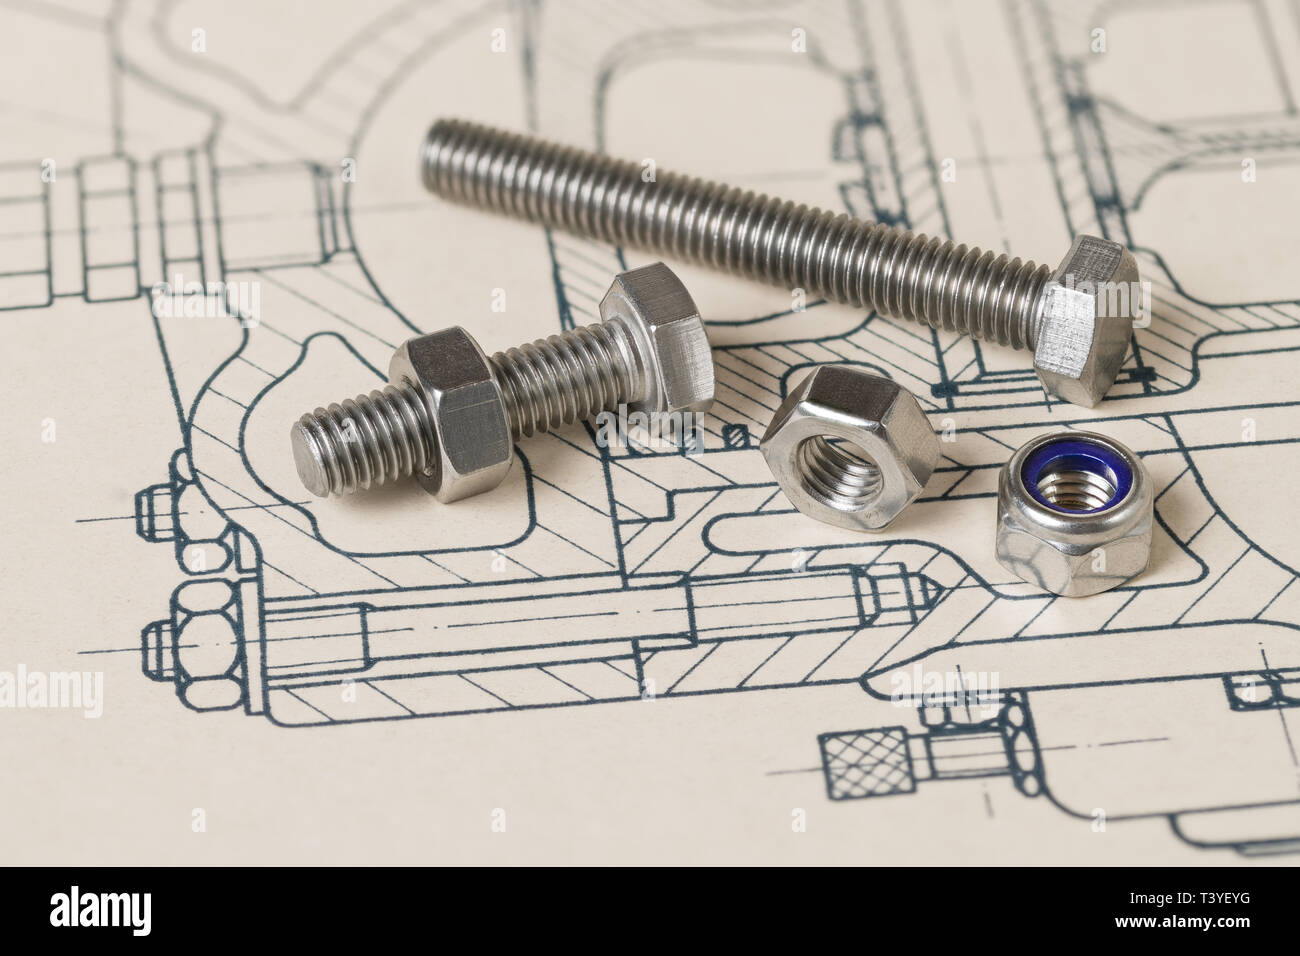 Metal bolts. Nuts group. Hatched drawing. Technical drafting. Steel screws. Threaded parts with hexagonal head. Blue lock washer. Professional project. - Stock Image